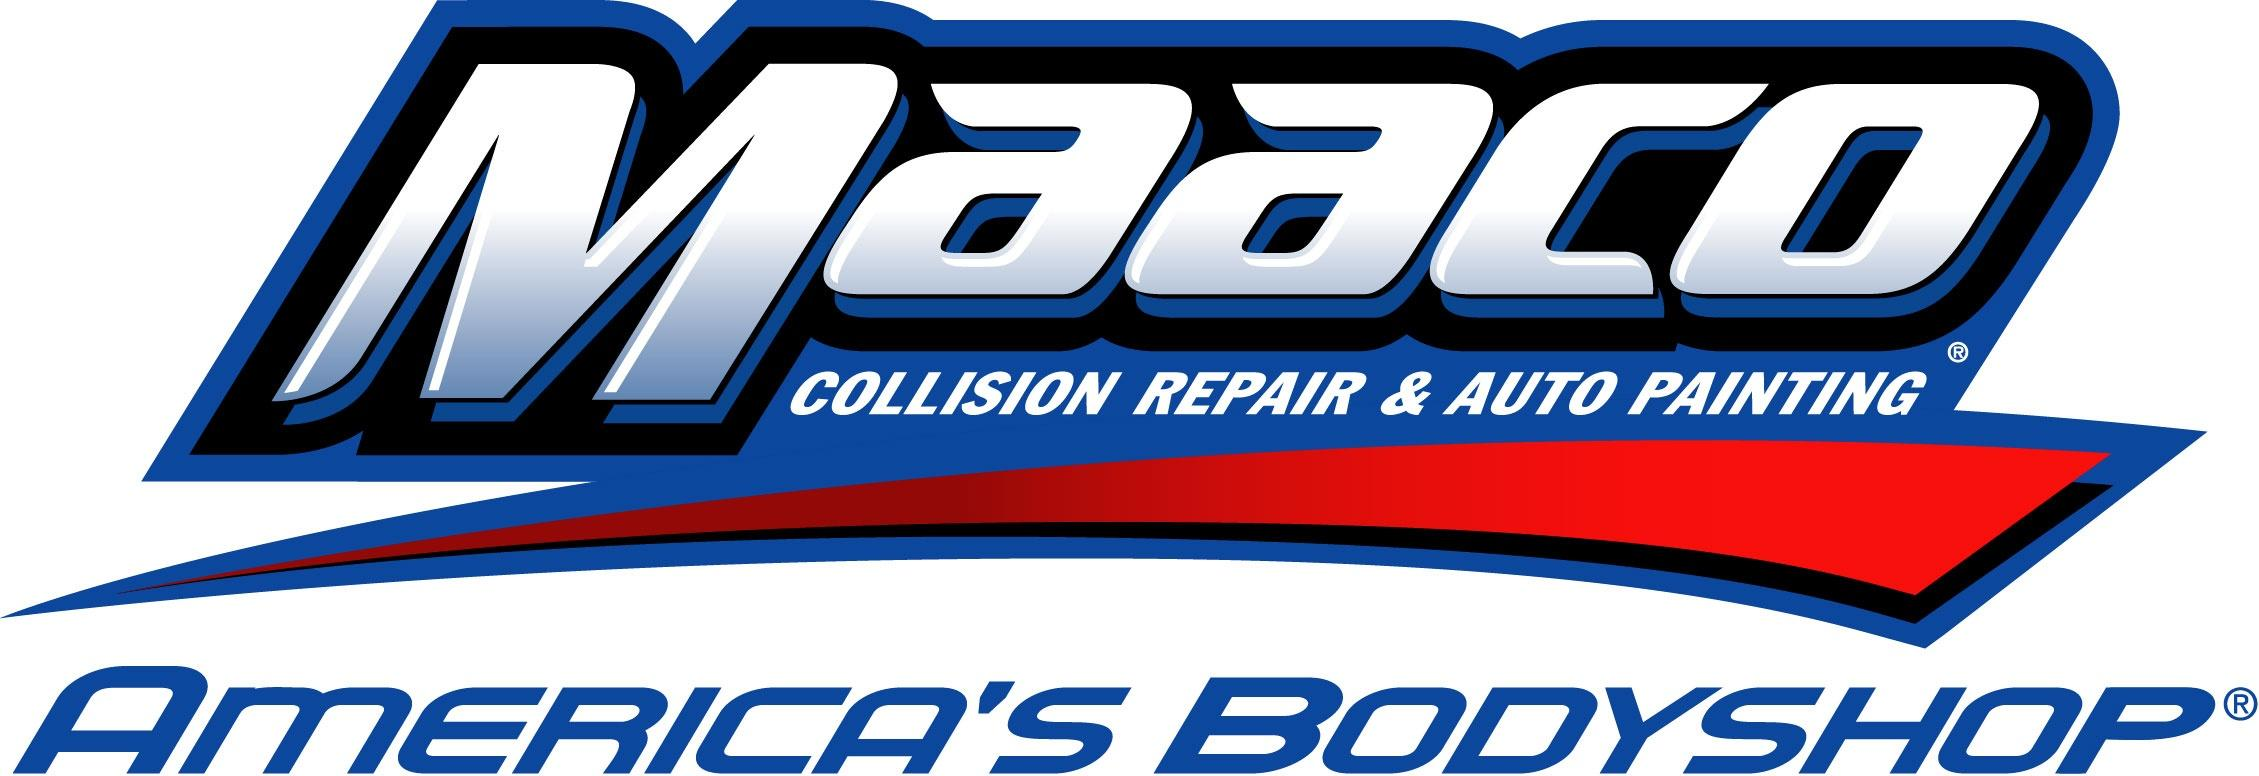 Maaco Collision Repair & Auto Painting image 8